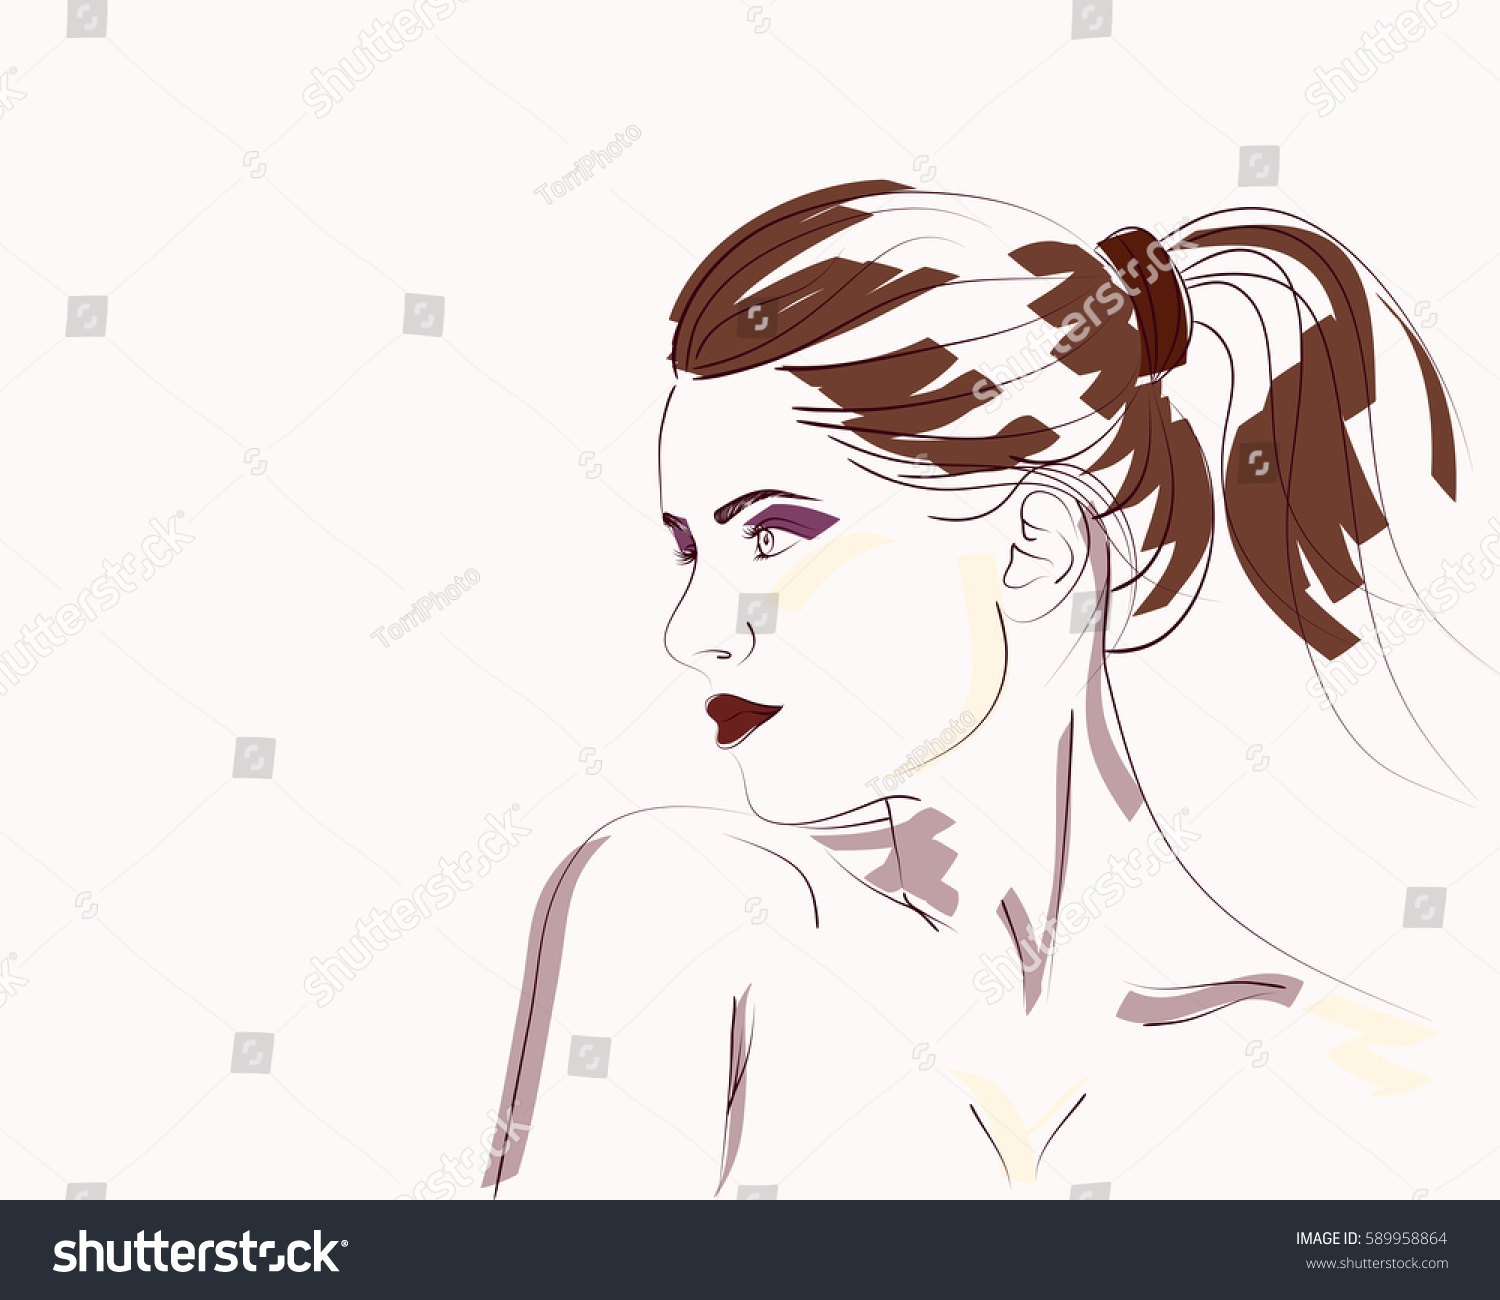 https://www.shutterstock.com/image-vector/hand-drawn-fashion-portrait-young-woman-589958864